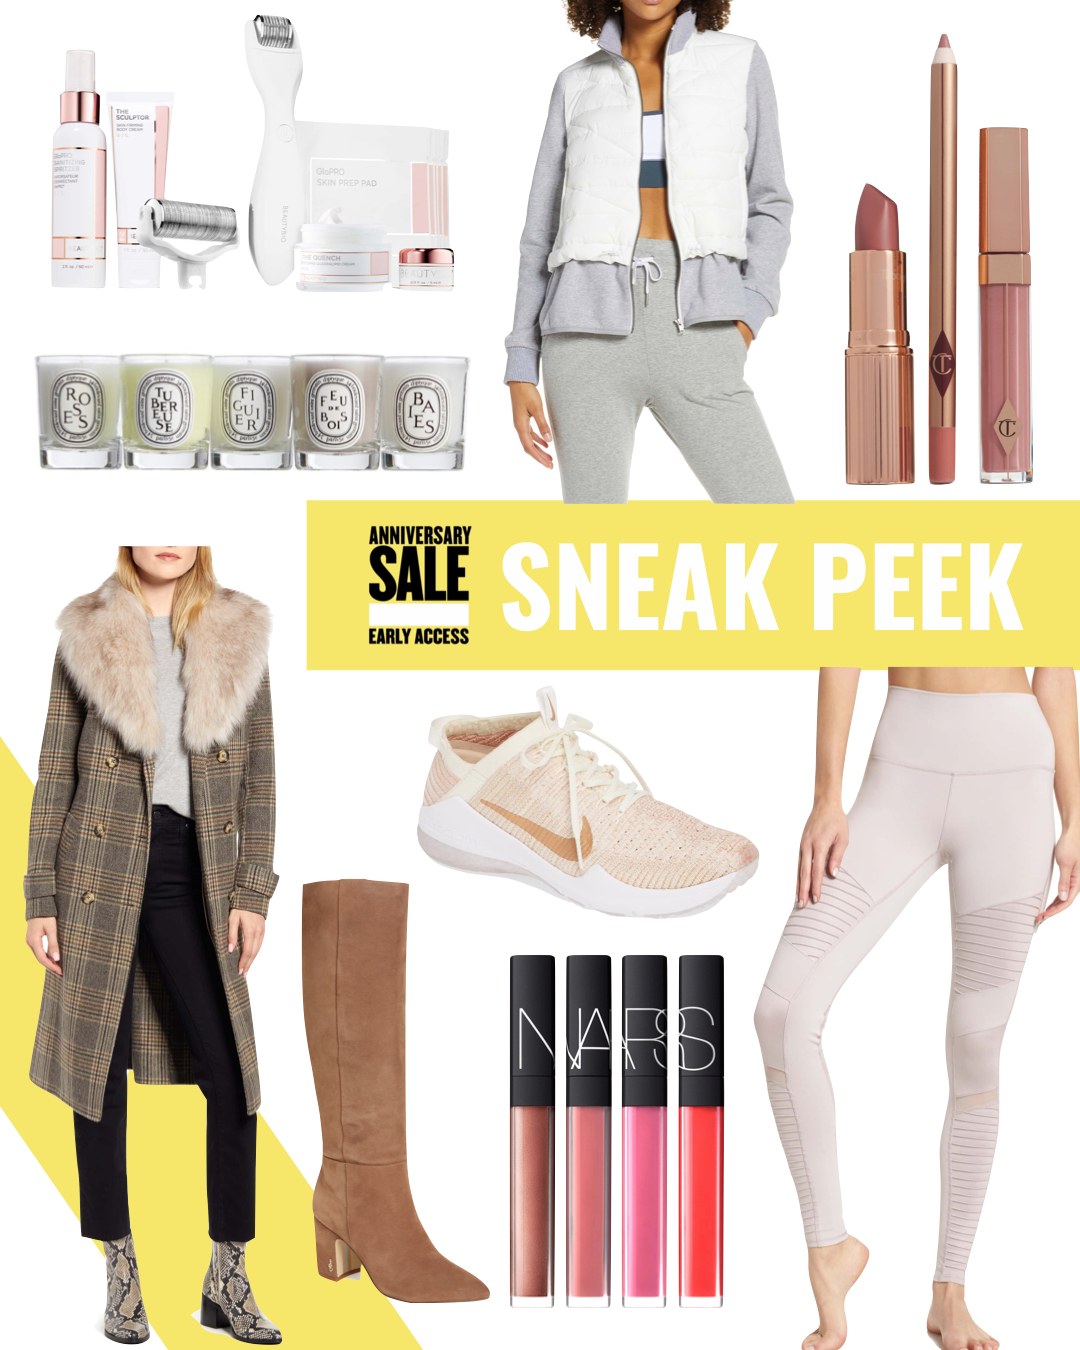 e0f743315e3 Nordstrom Anniversary Sale 2019 Sneak Peek | Early Access Catalog